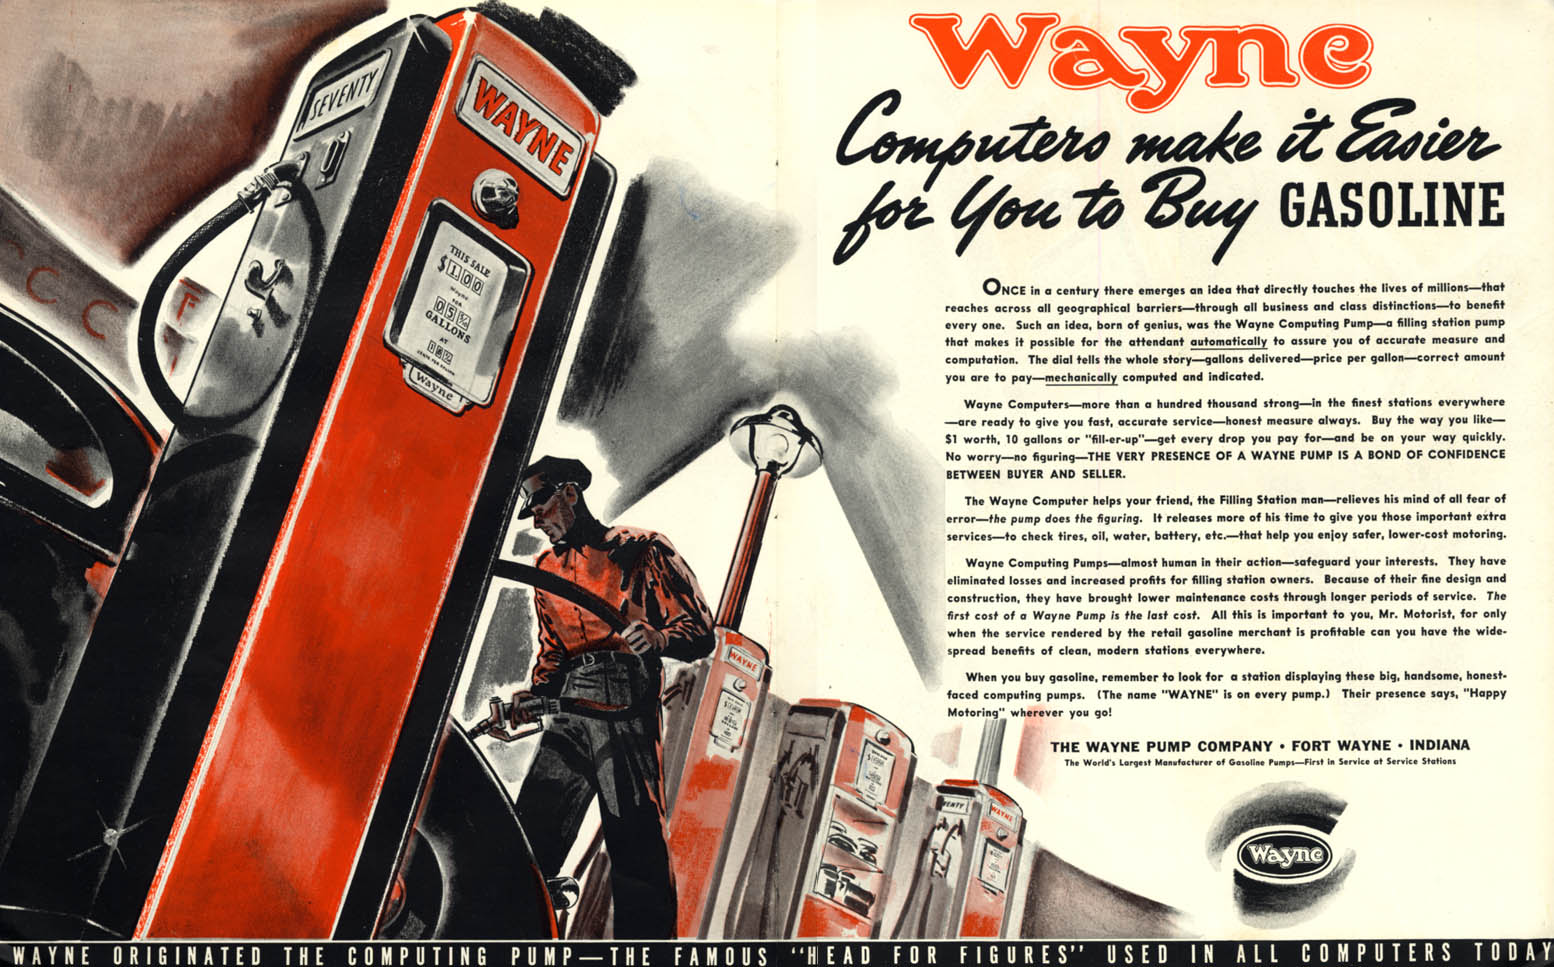 Image for Wayne Computing Gasoline Pumps make it easier for You to Buy Gas ad 1939 F